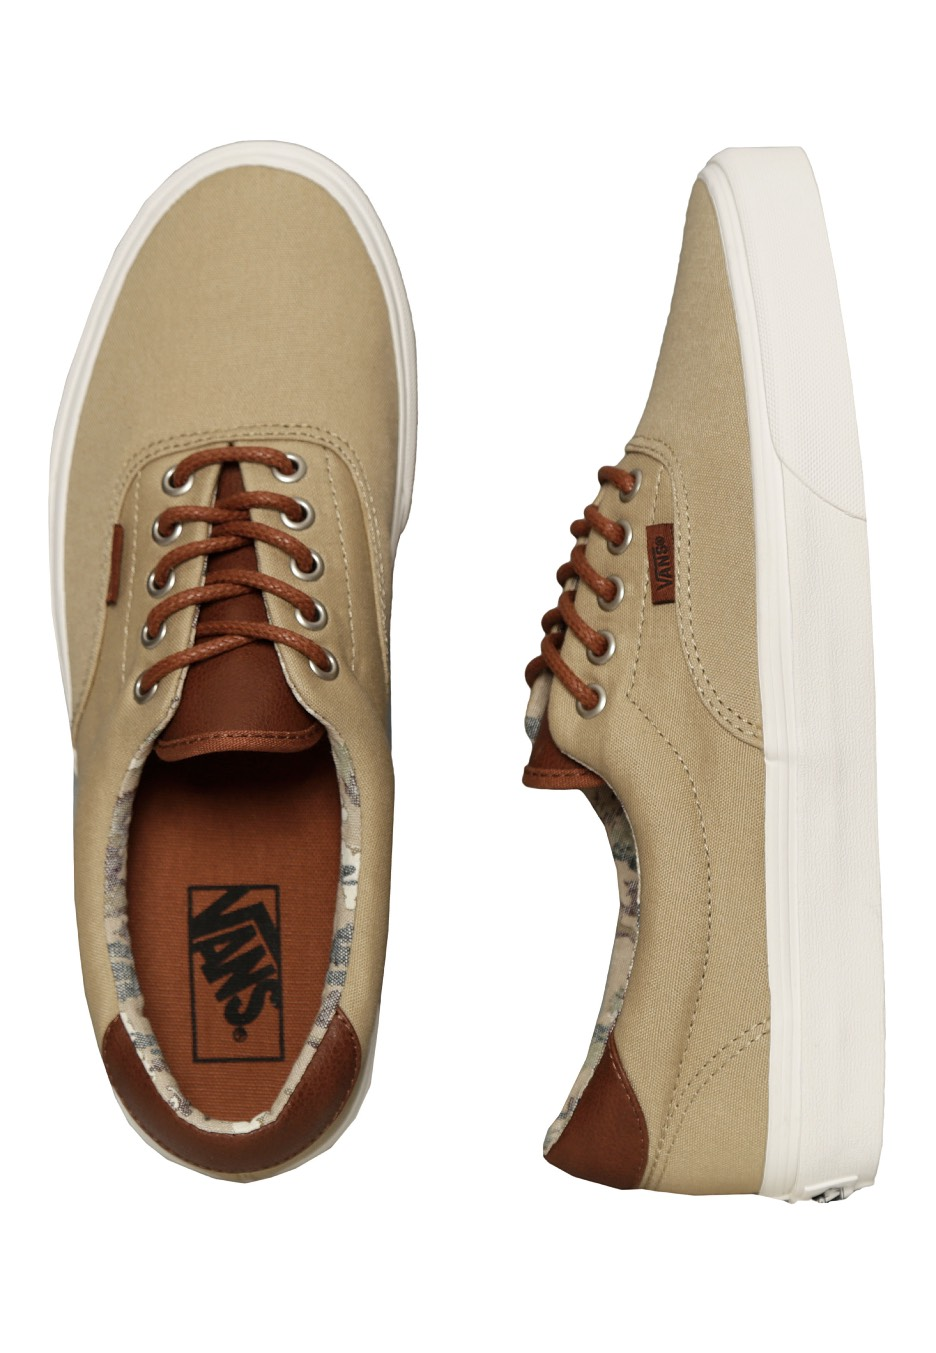 8812609815 Vans - Era 59 Desert Cowboy Khaki - Shoes - Impericon.com Worldwide